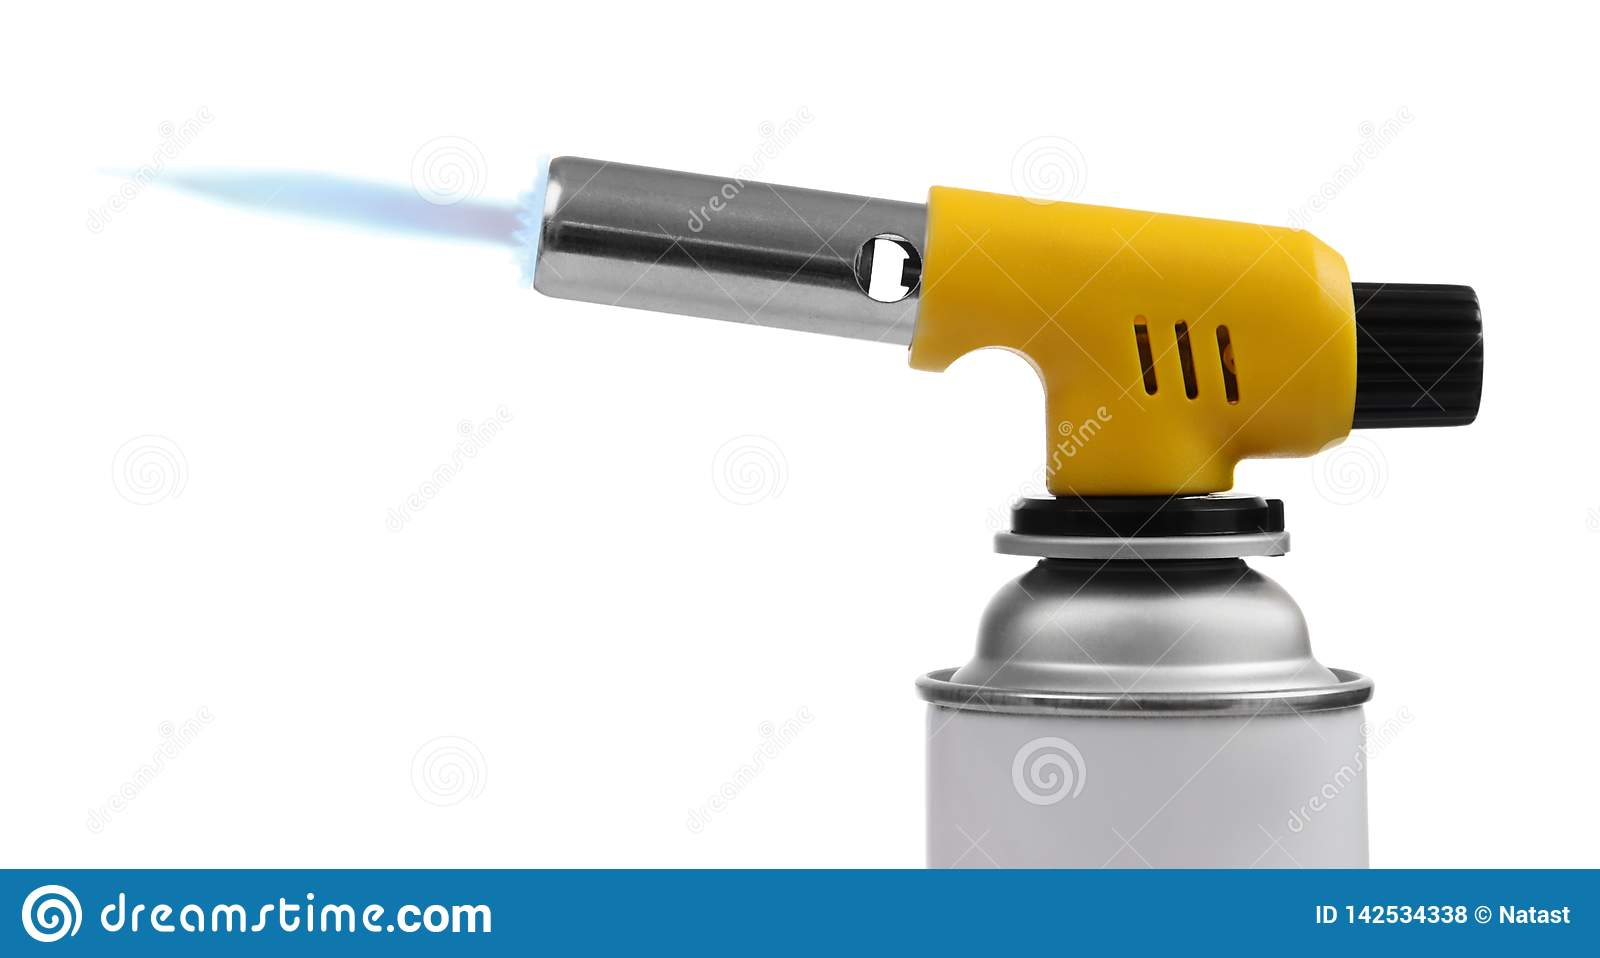 Manual gas torch burner on spray can with blue flame on white